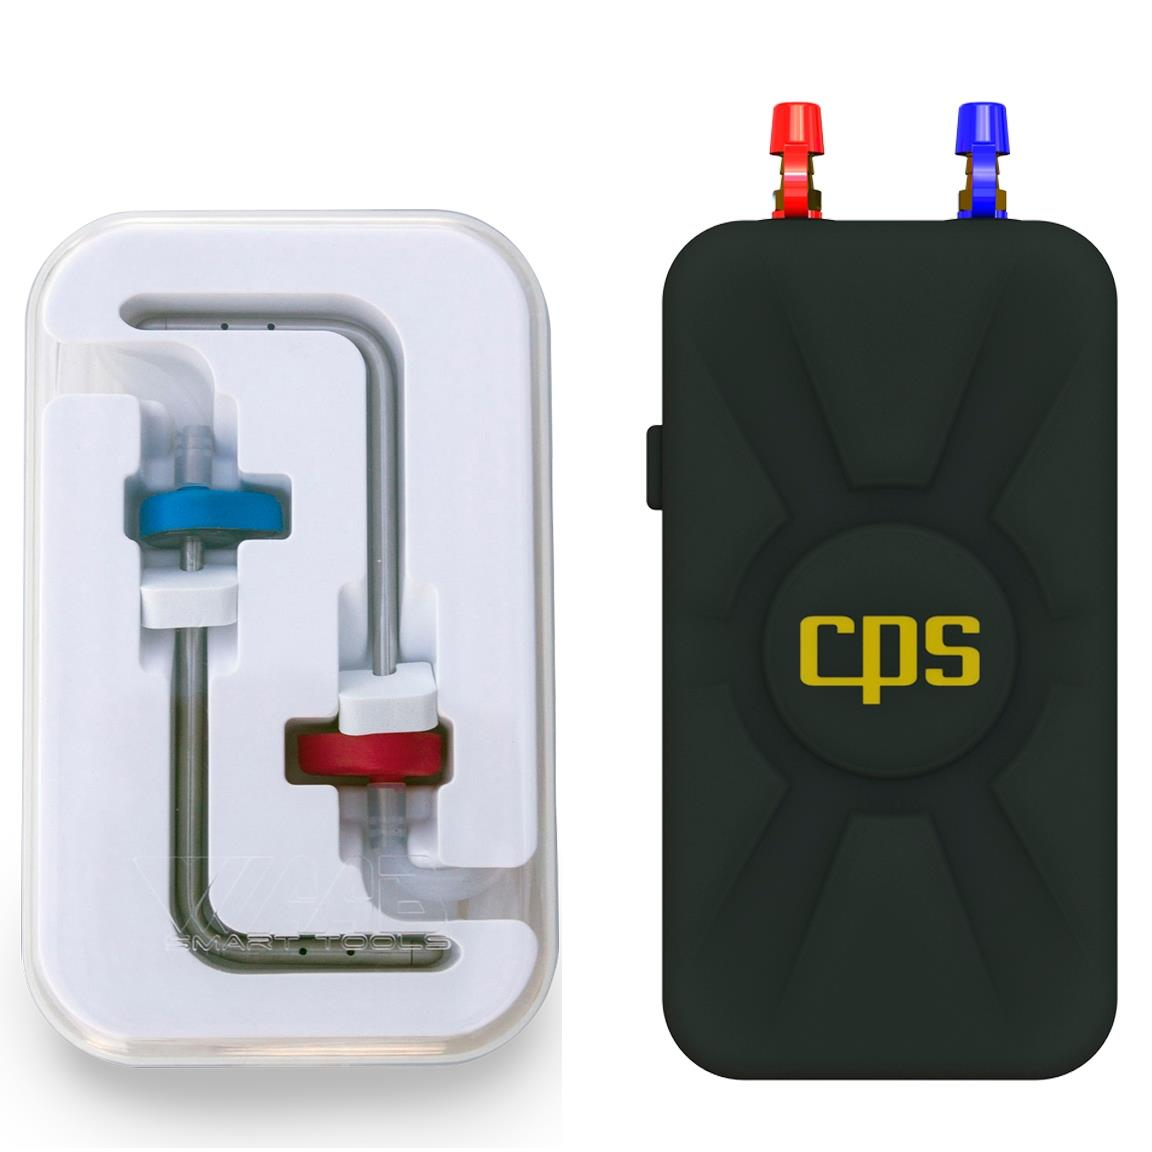 CPS SPM-K1 Differential Pressure Wireless Manometer and Static Probe Kit